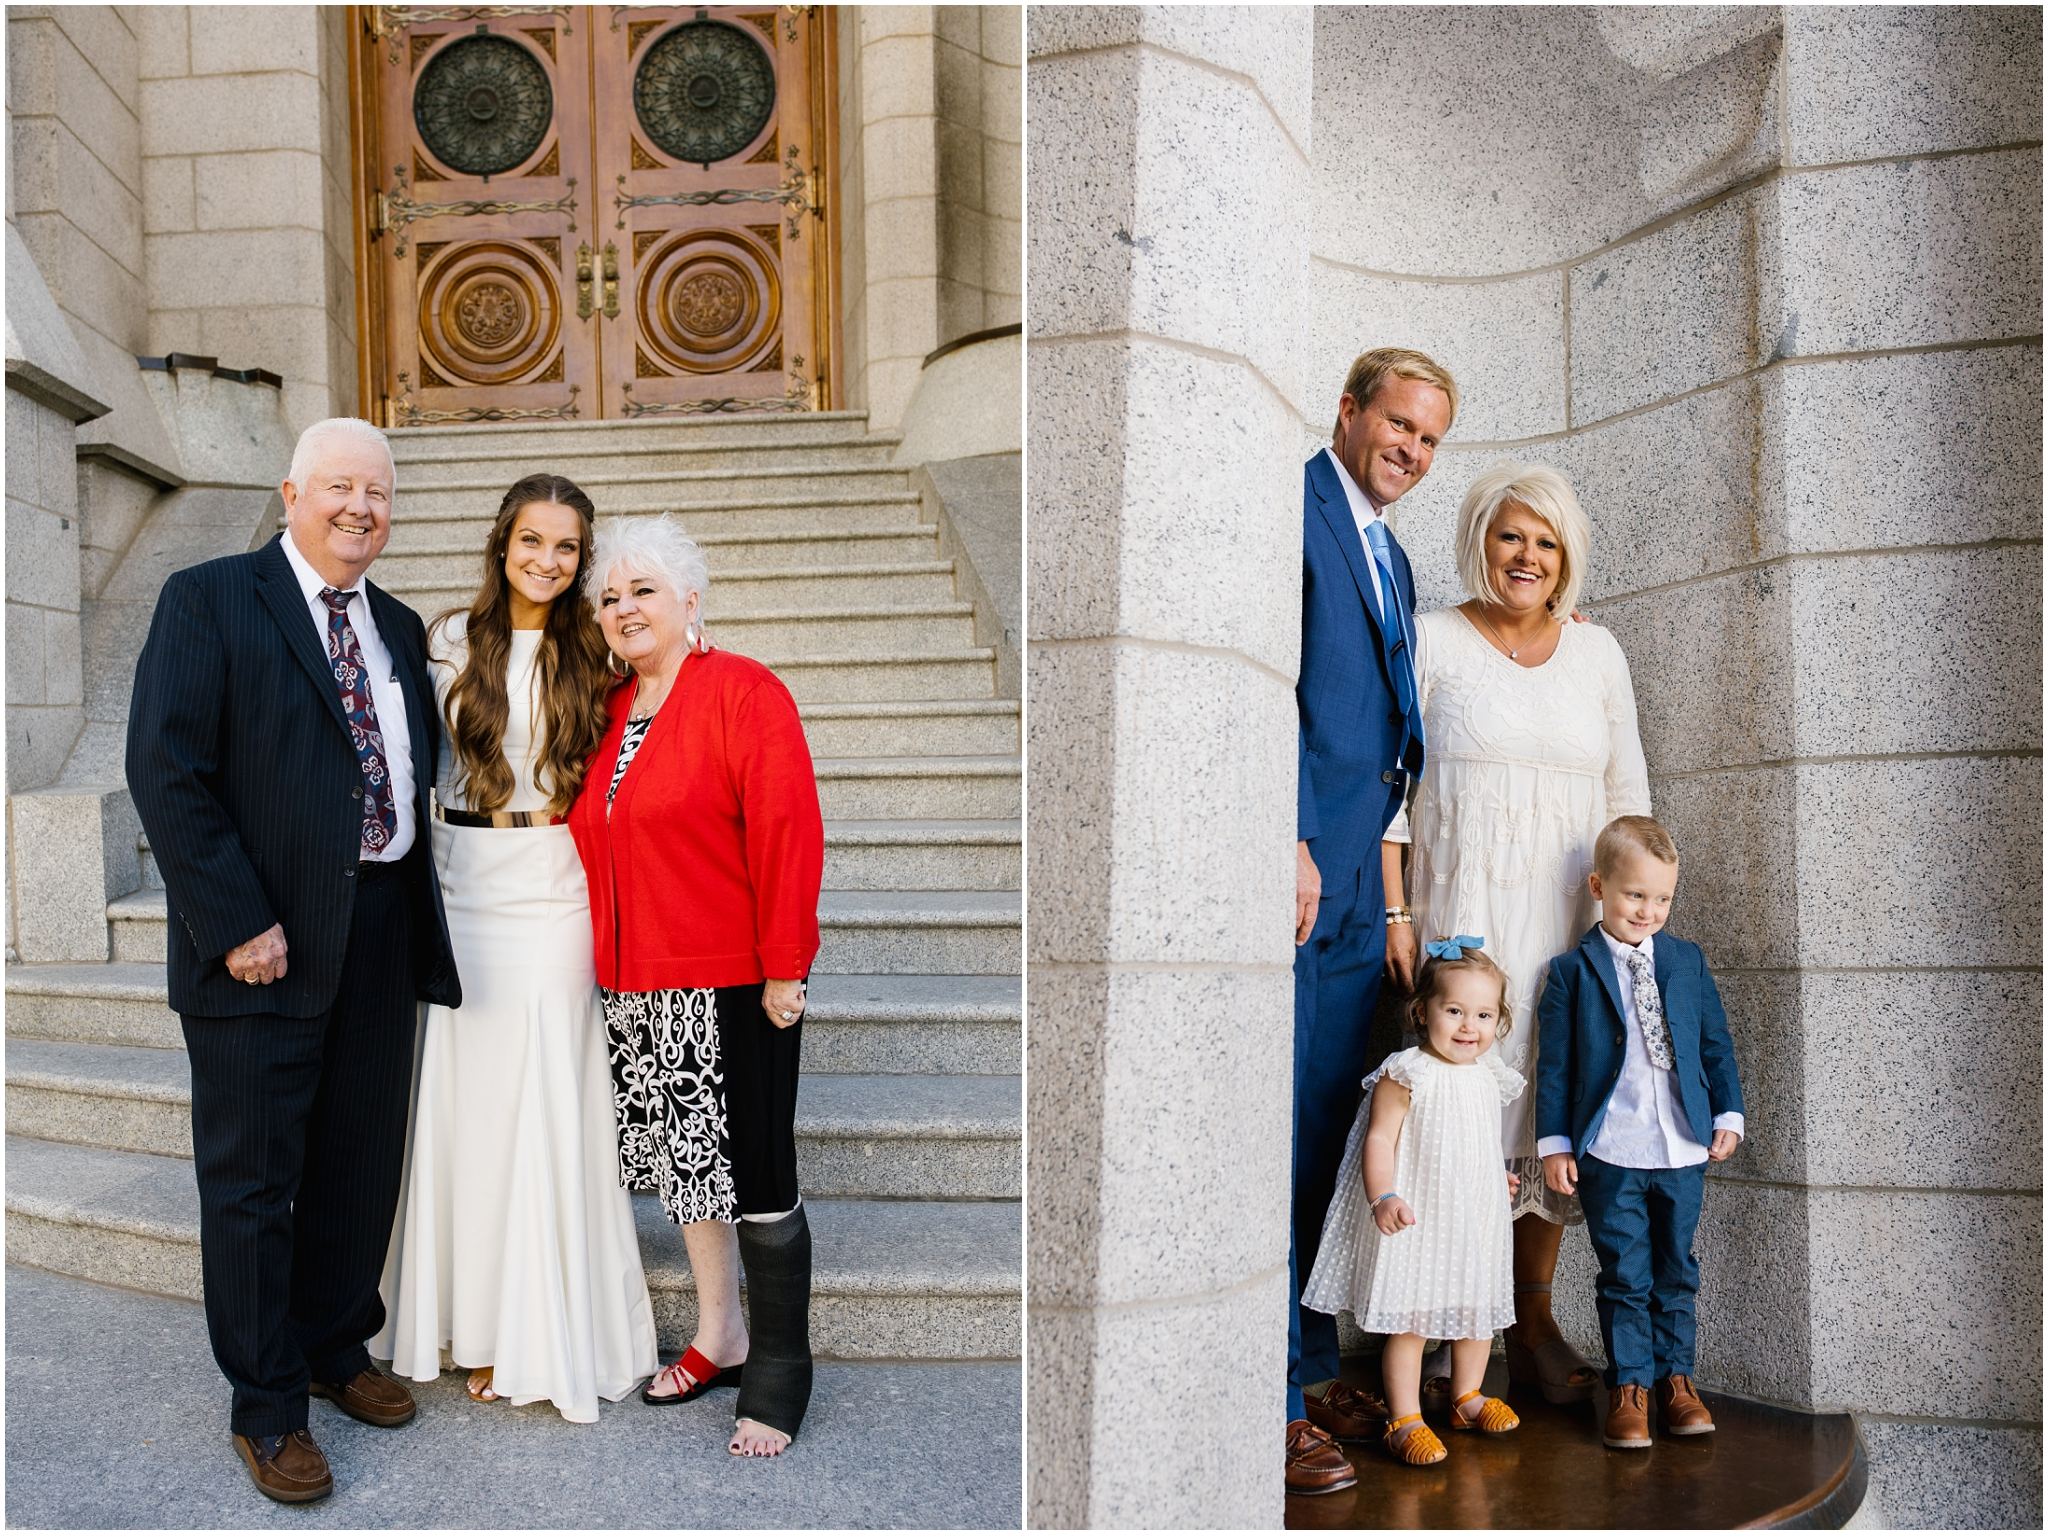 JC-Wedding-85_Lizzie-B-Imagery-Utah-Wedding-Photographer-Salt-Lake-City-Temple-Joseph-Smith-Memorial-Building-Reception.jpg